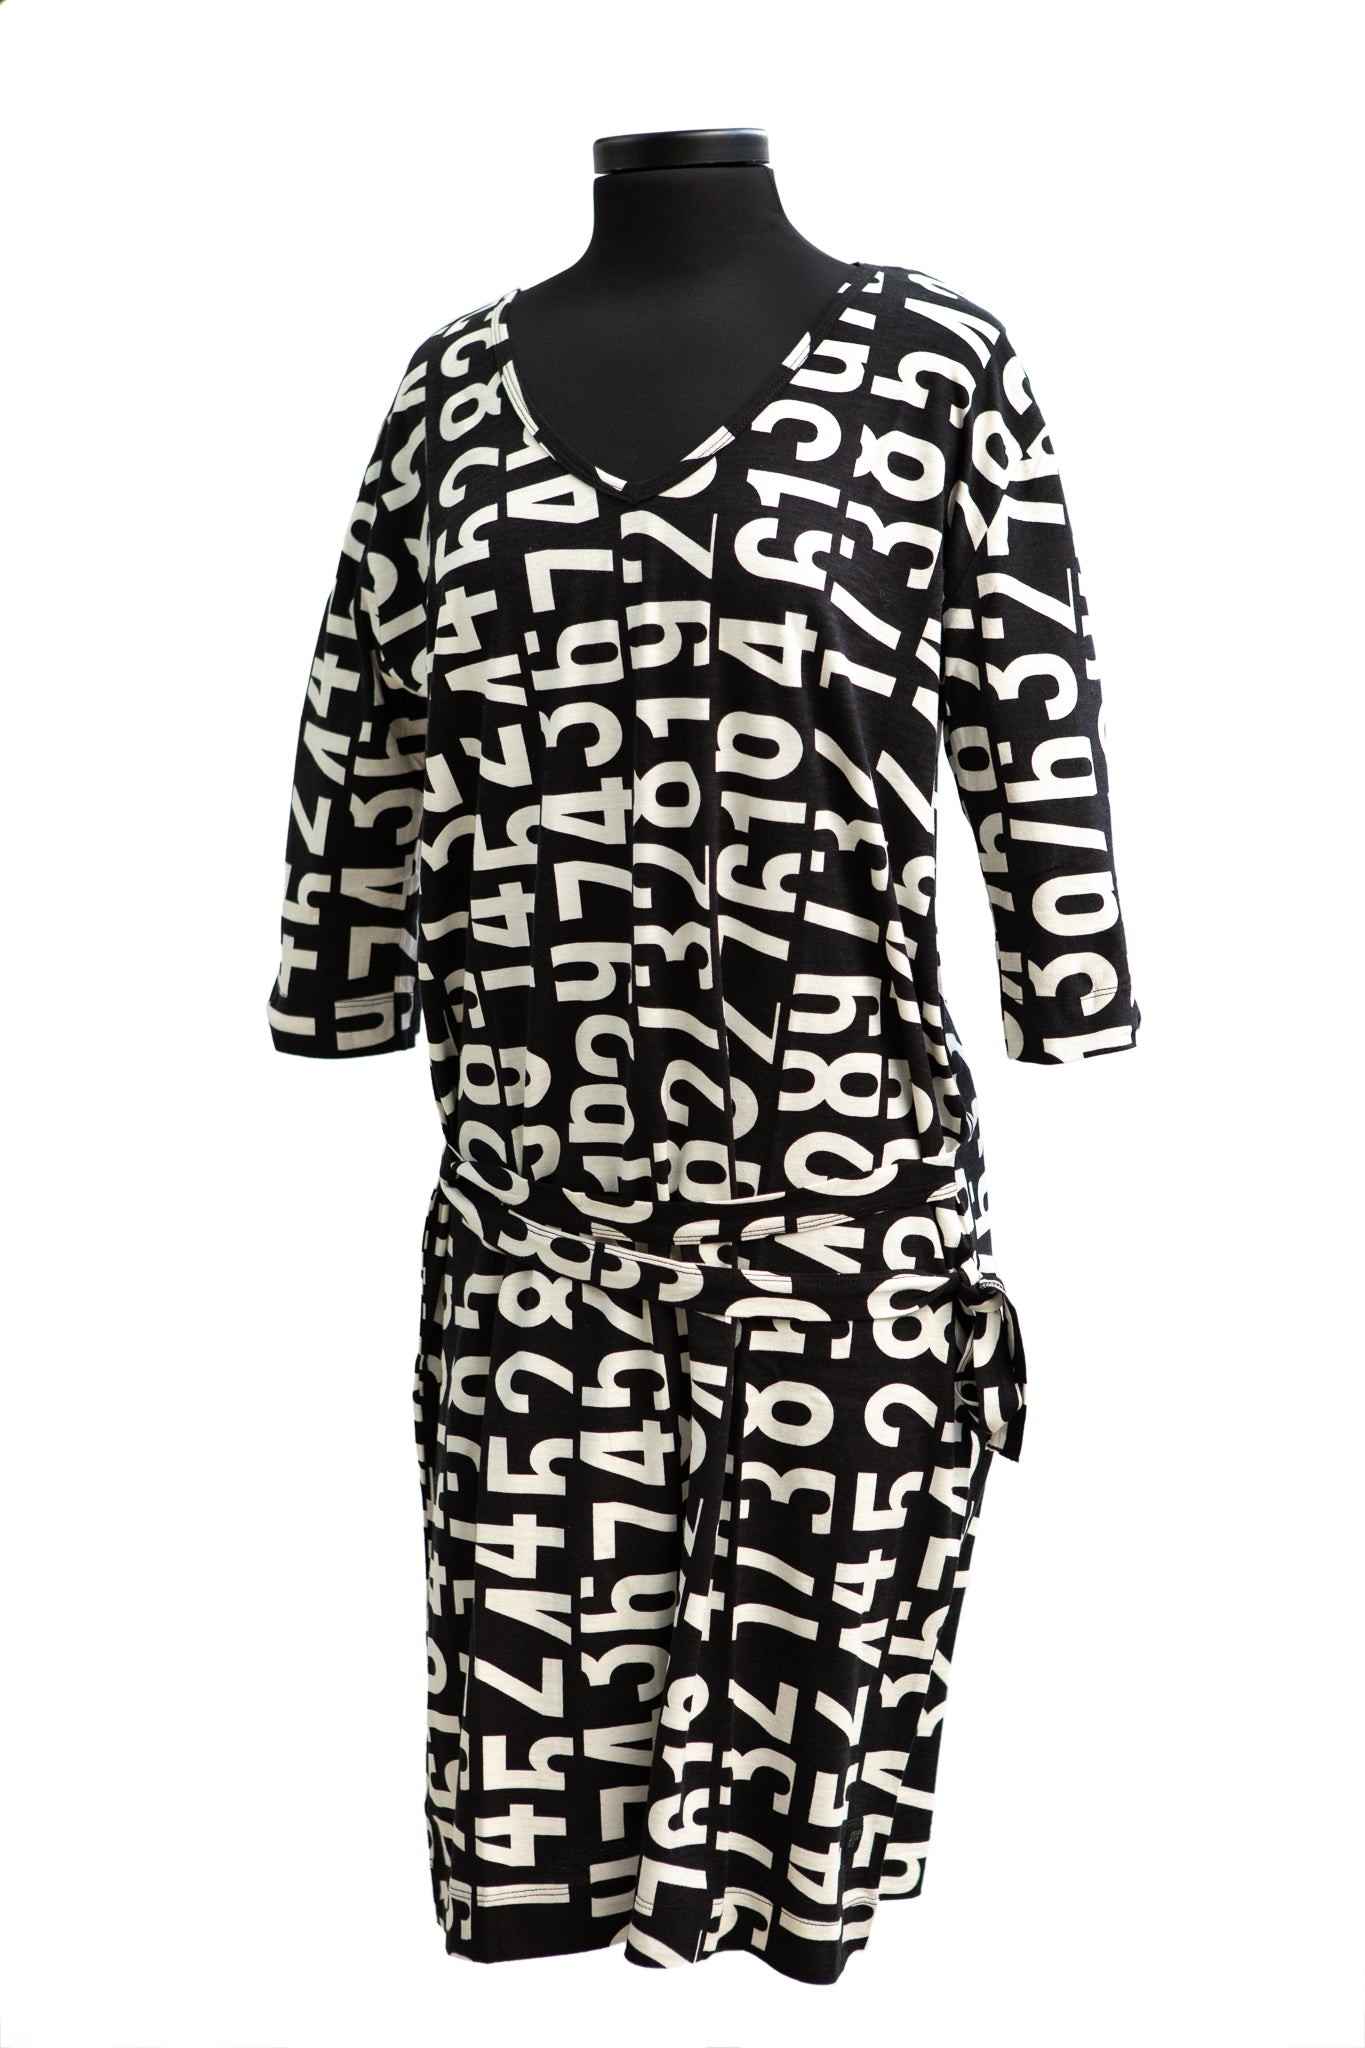 P & I Number Printing Cotton Black Dress